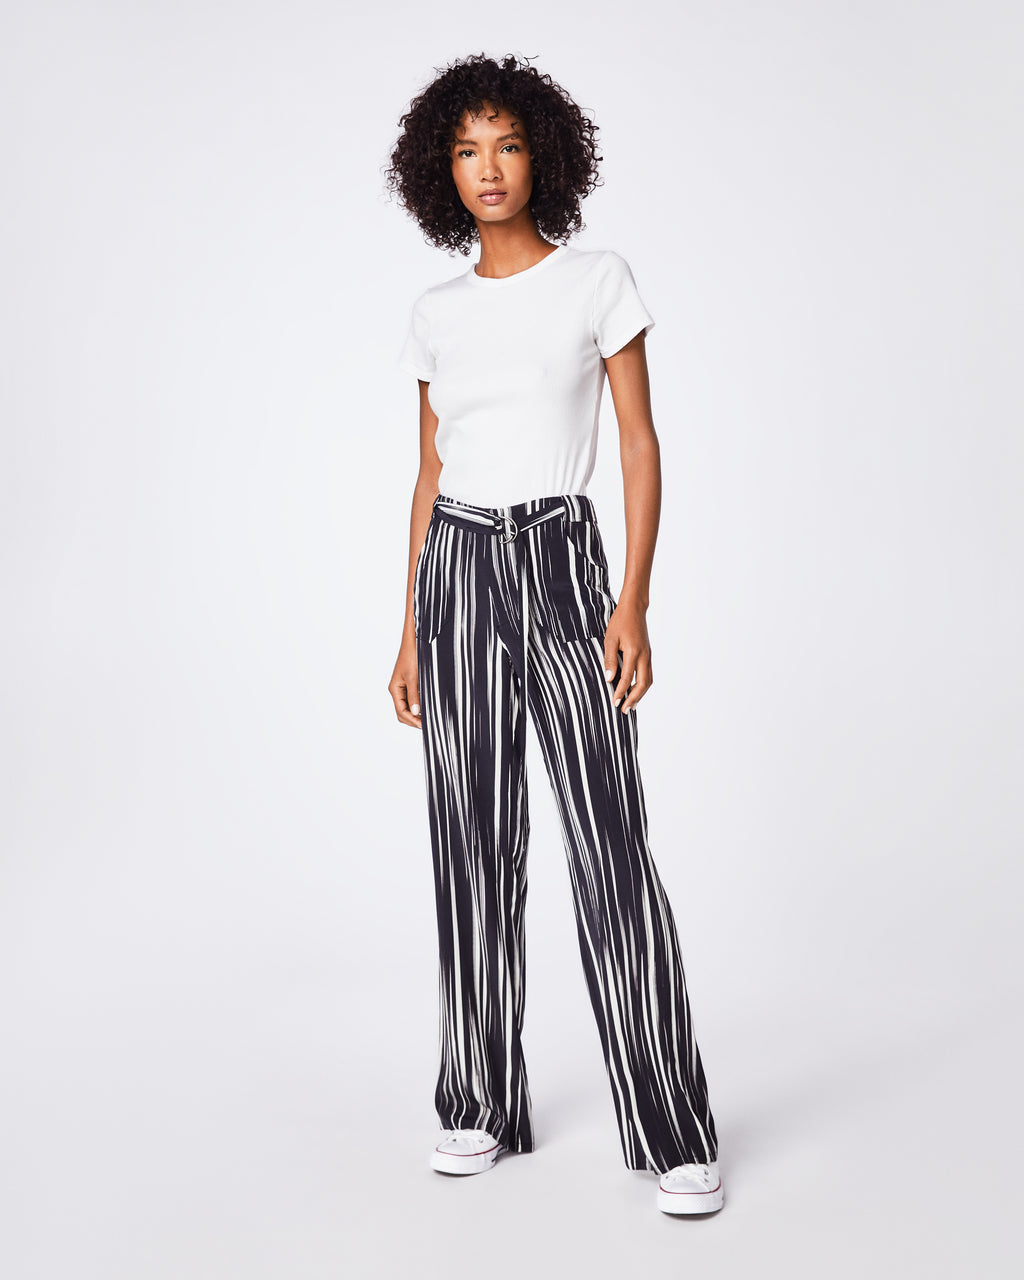 BP10251 - BARCODE TROUSER - bottoms - pants - These high-waist black and white silk pants are finished with a tie waist, are the perfect go to pant. They are effortlessly cool for on- or off-duty dressing.